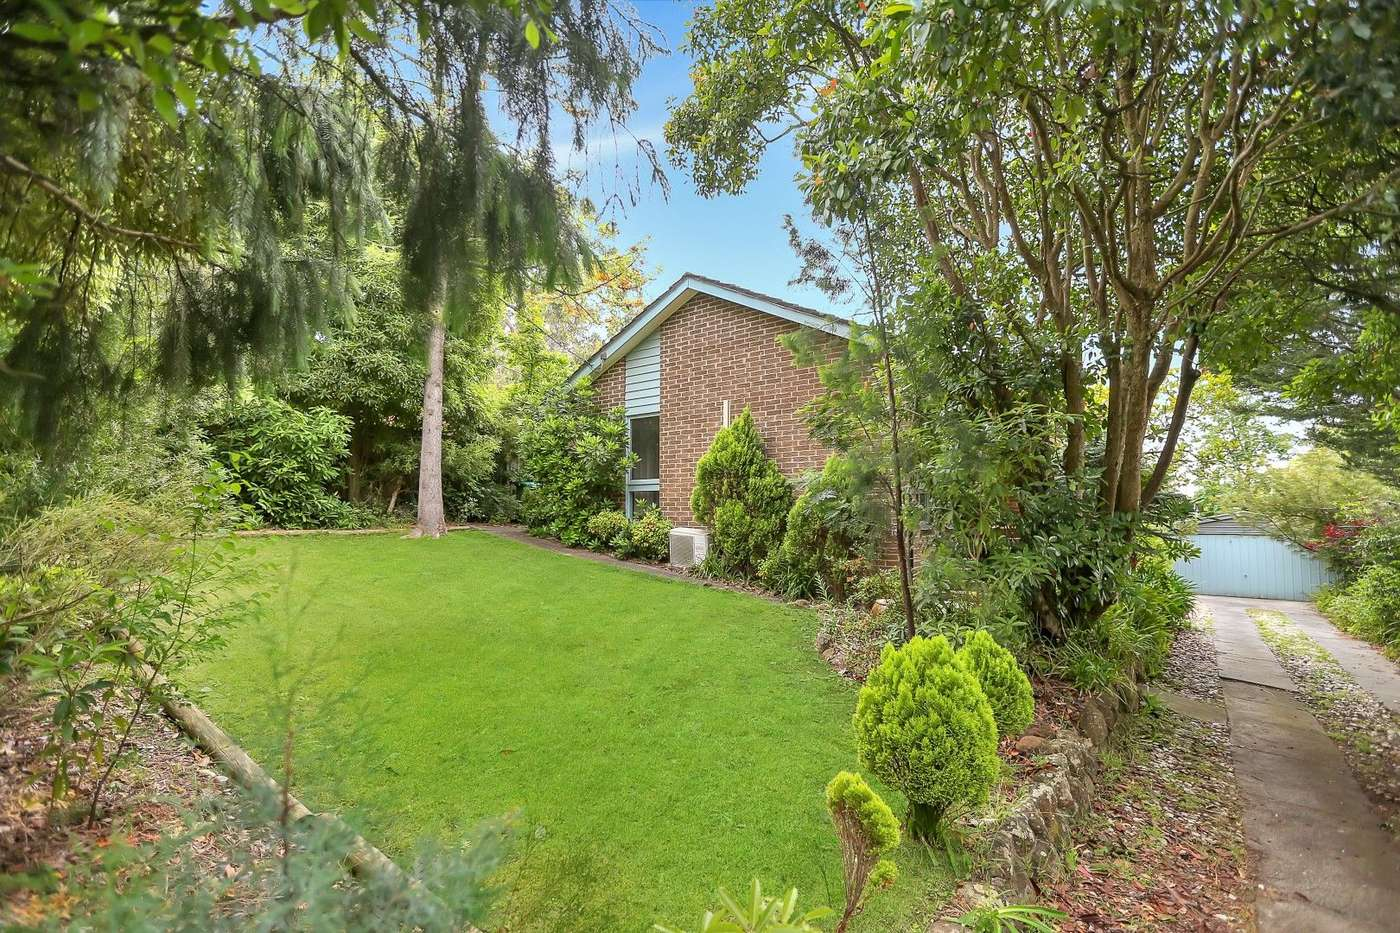 Main view of Homely house listing, 71 Montrose Road, Montrose, VIC 3765